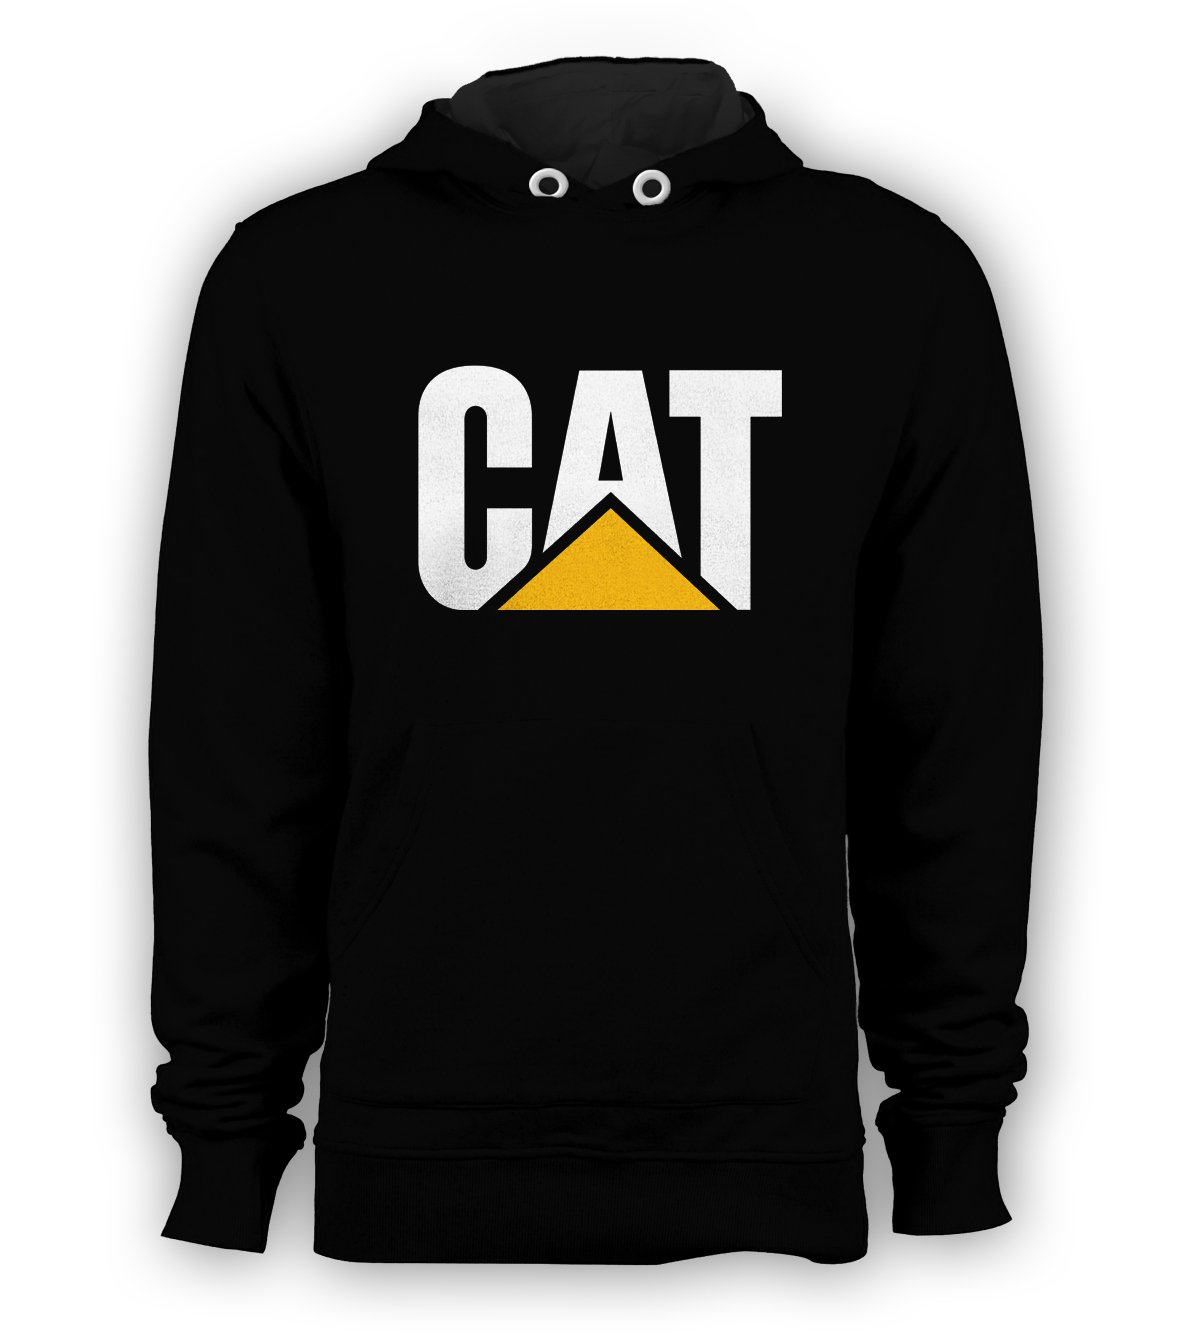 CAT CAterpillar Pullover Hoodie Men Diesel Tractor Boot Sweatshirts Size S to 3XL New Black